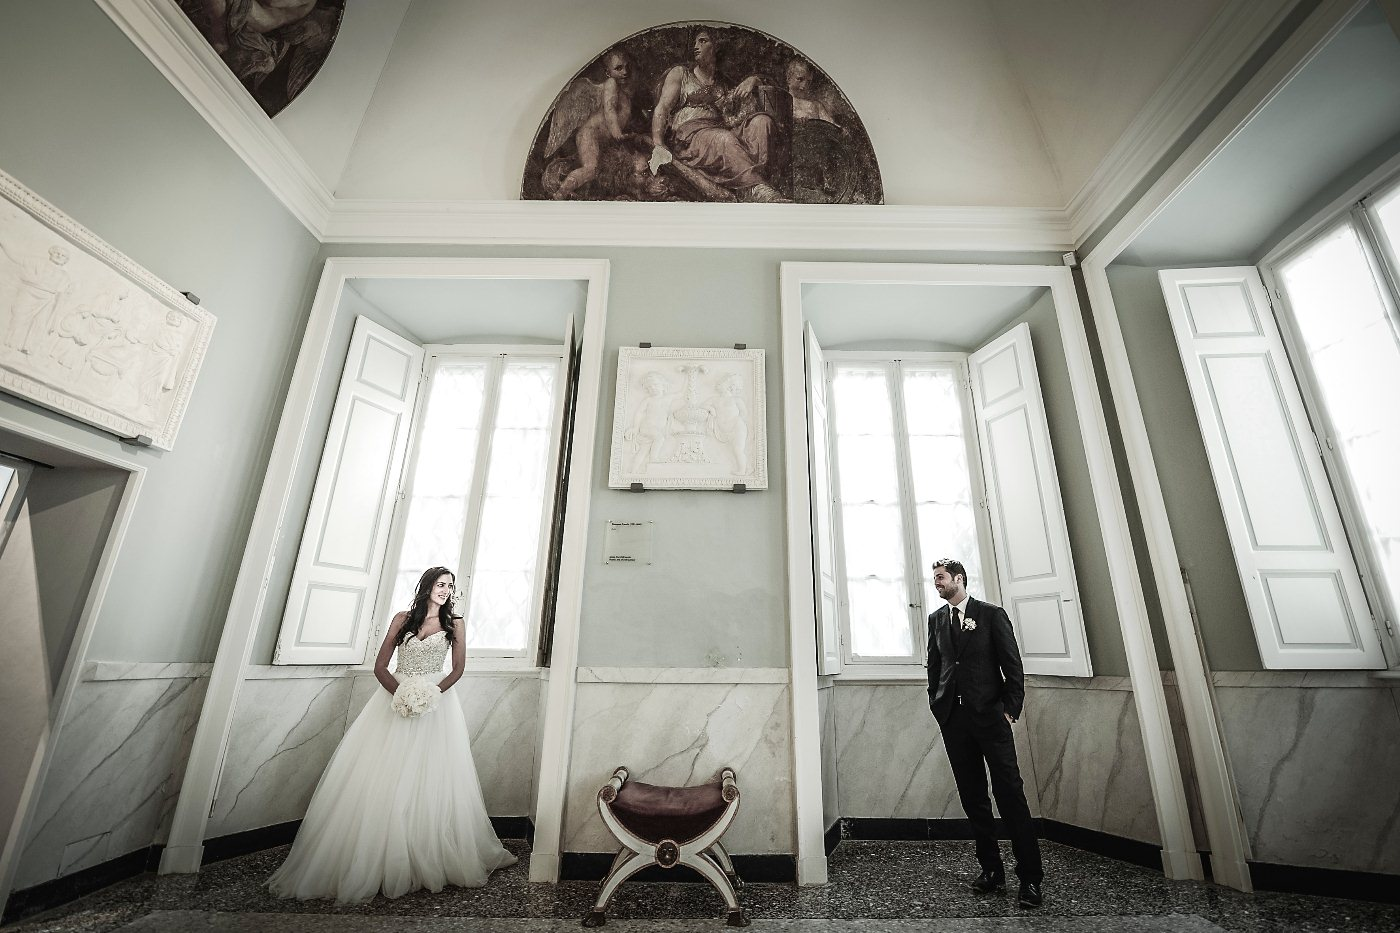 wedding photo tremezzo_11.jpg